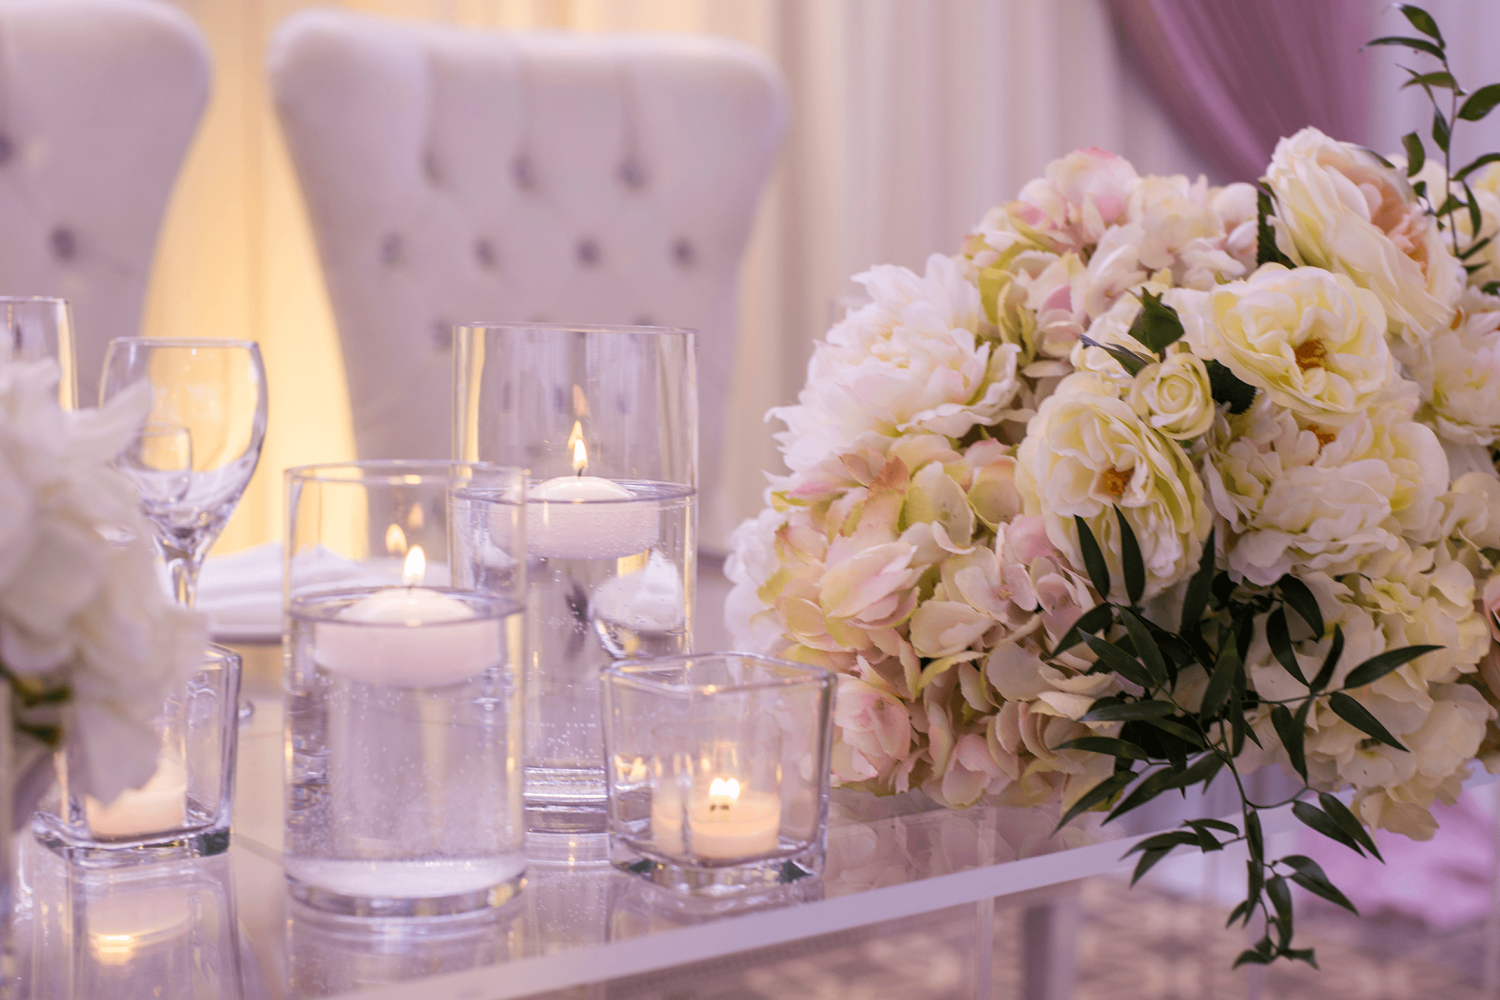 A close-up of a bouquet of flowers at the head table with candles and large, white chairs.